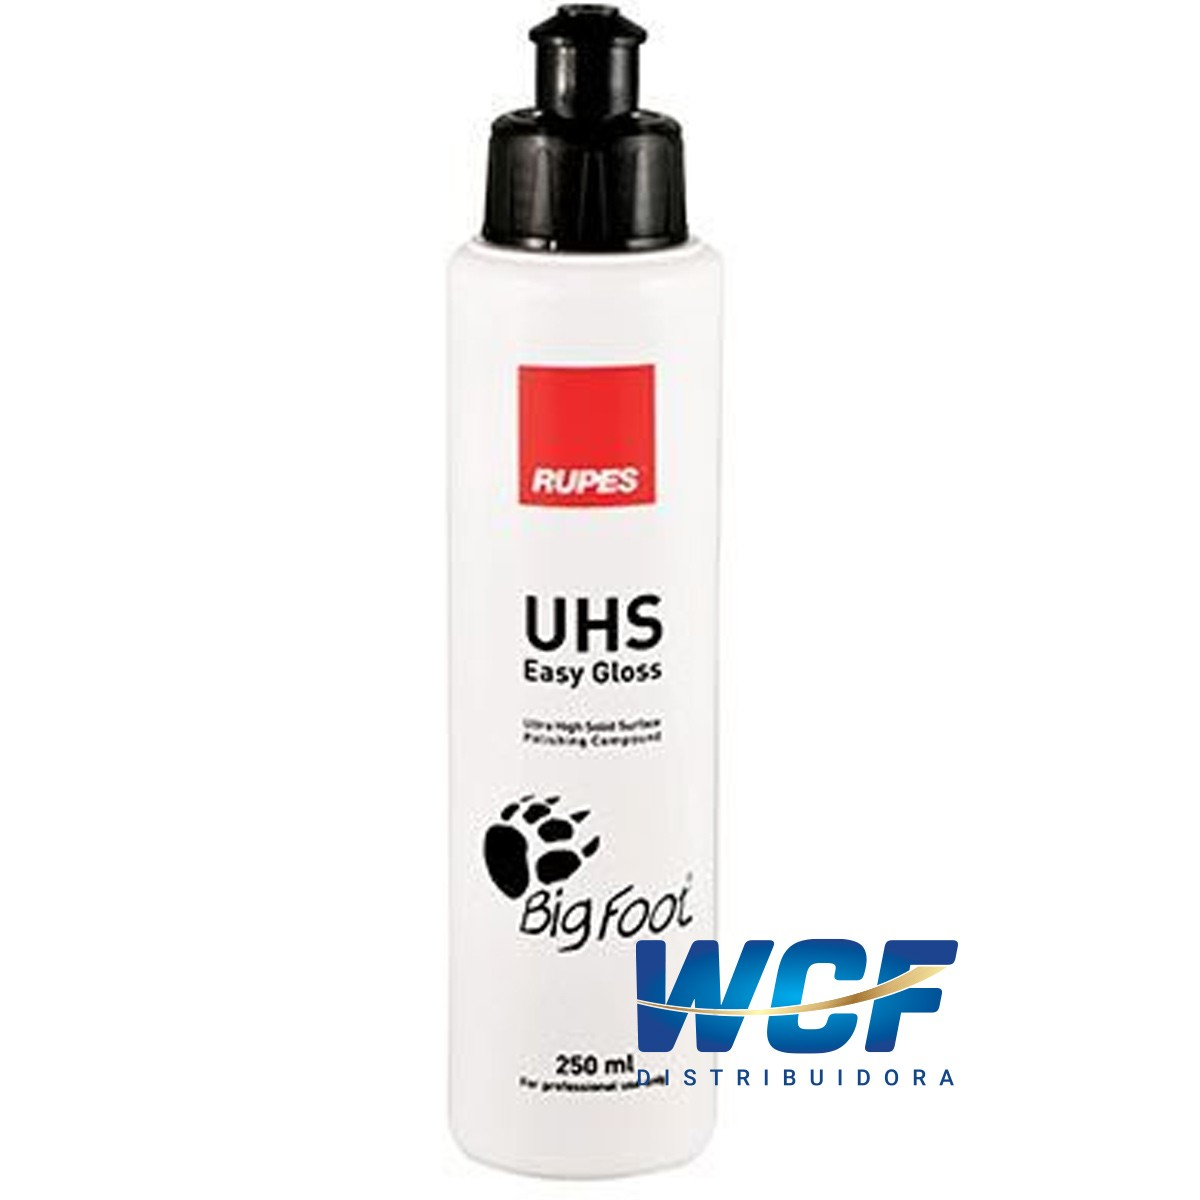 RUPES COMPOSTO UHS EASY GLOSS ULTRA HIGH SOLID CINZA 250 ML